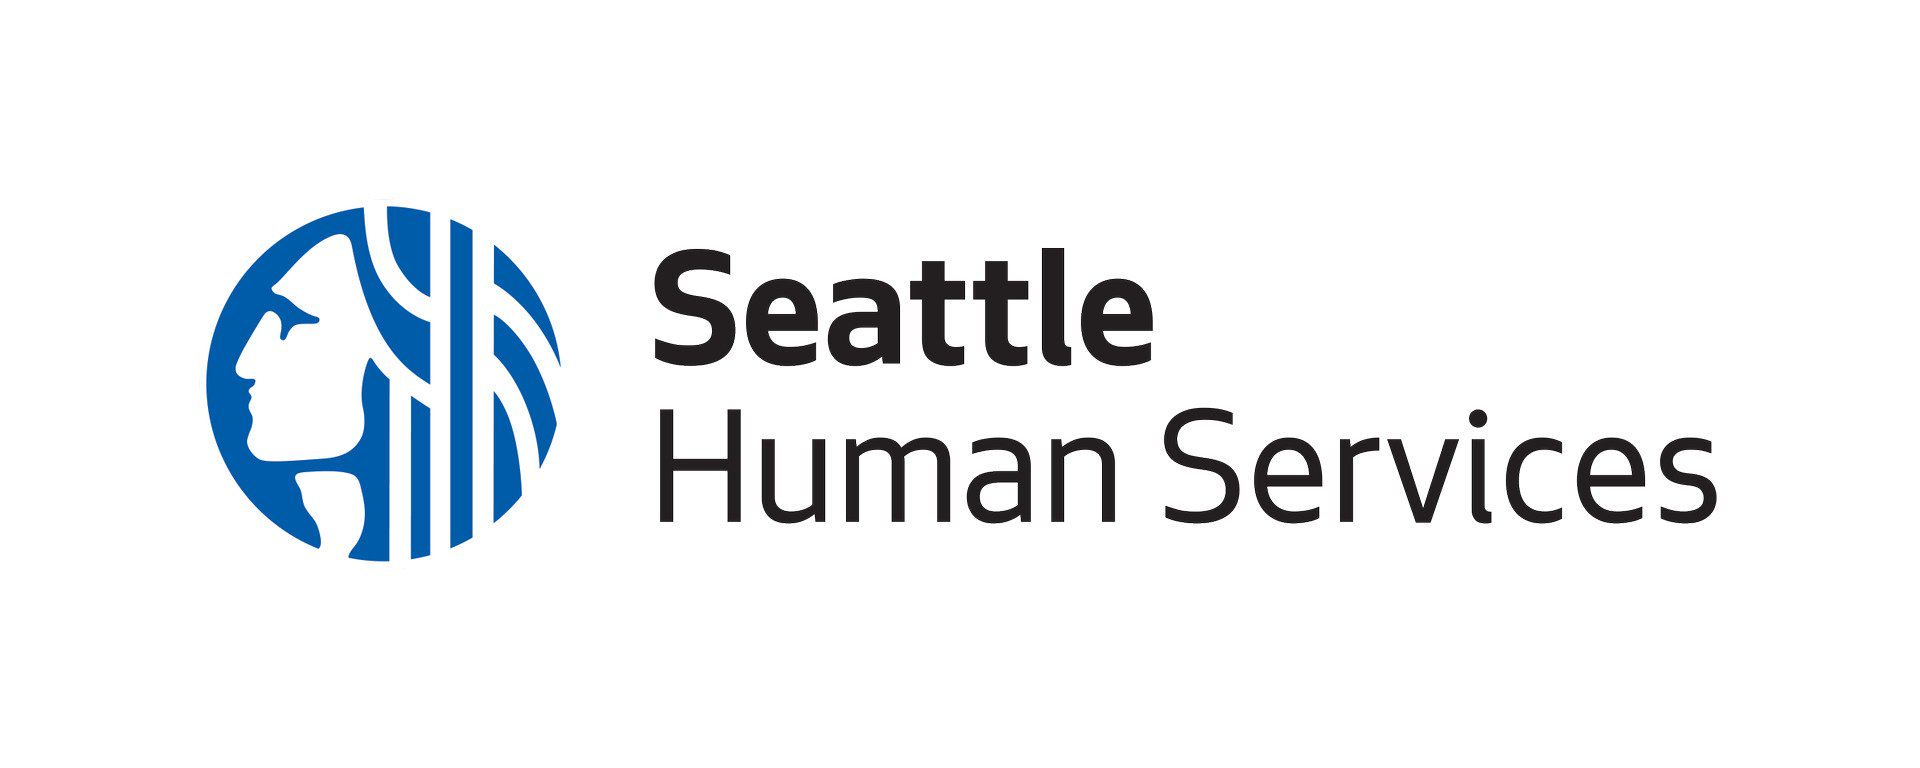 Seattle Human Services logo